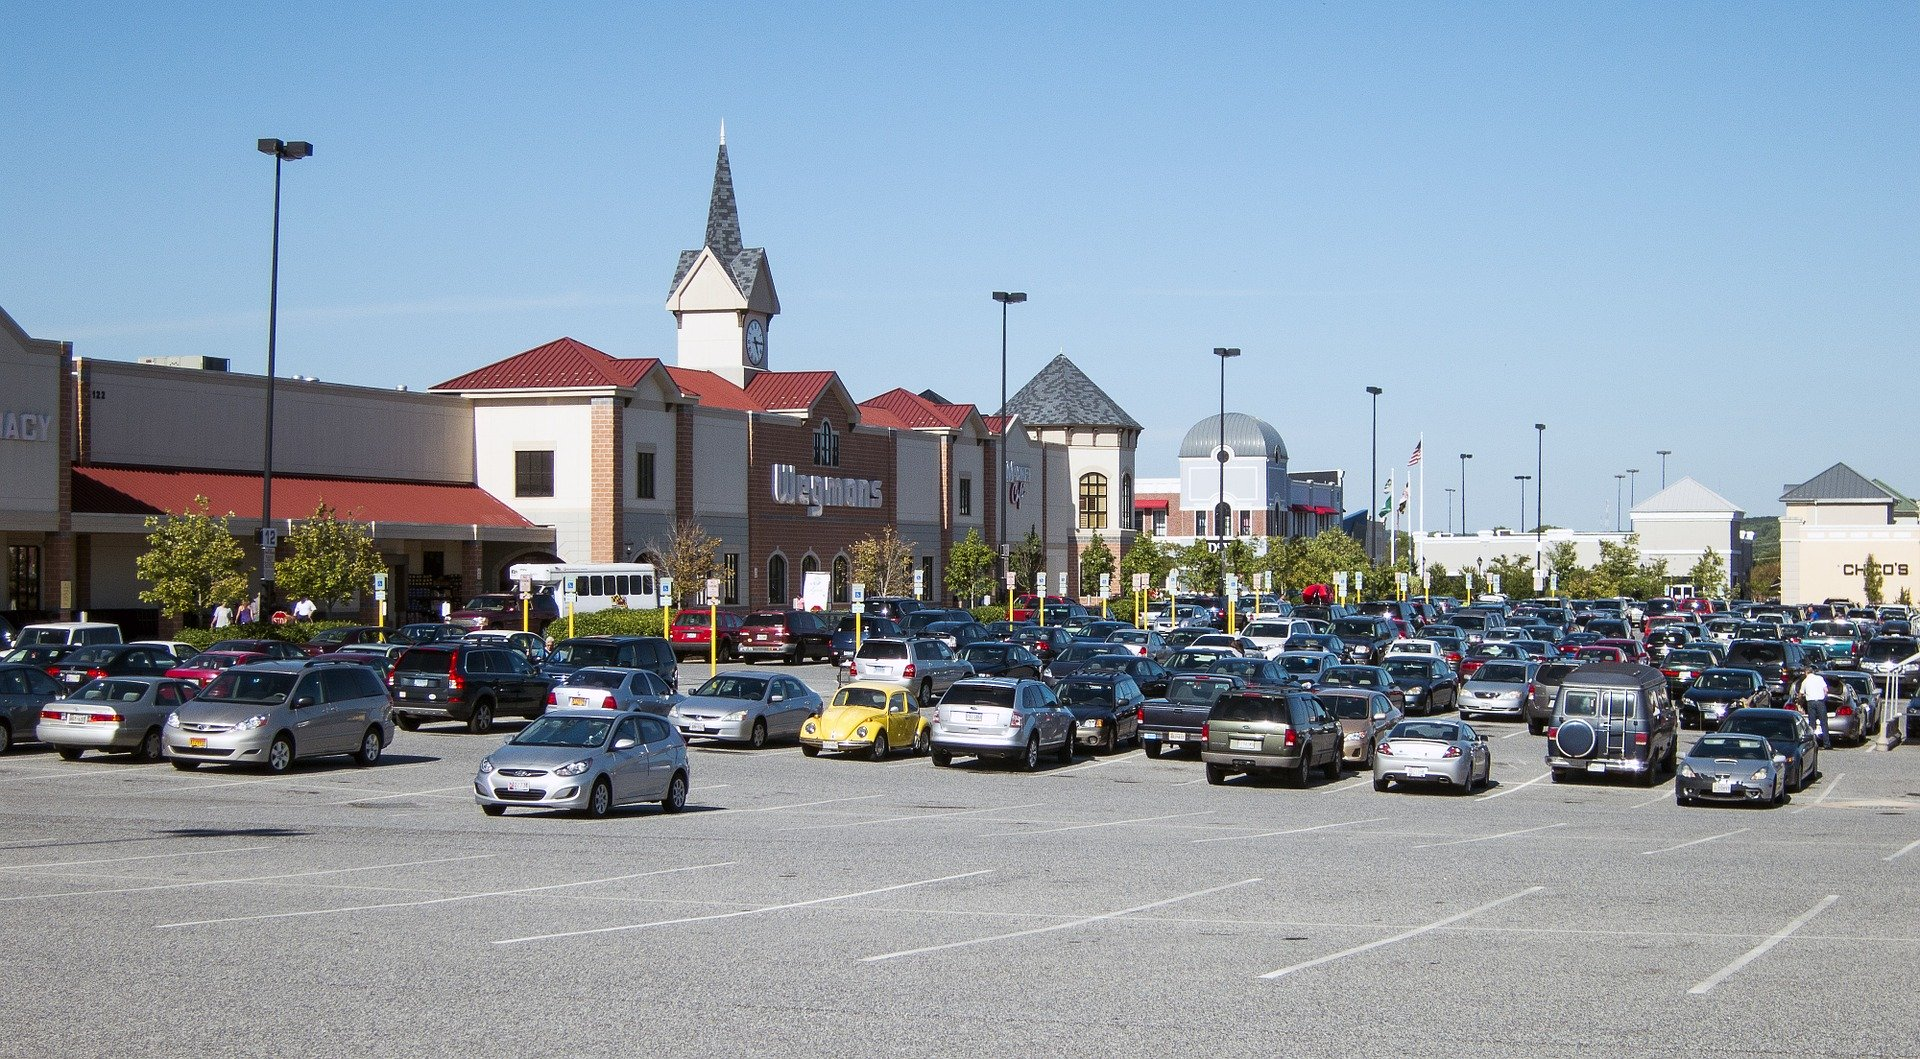 Cars parked in a shopping center parking lot